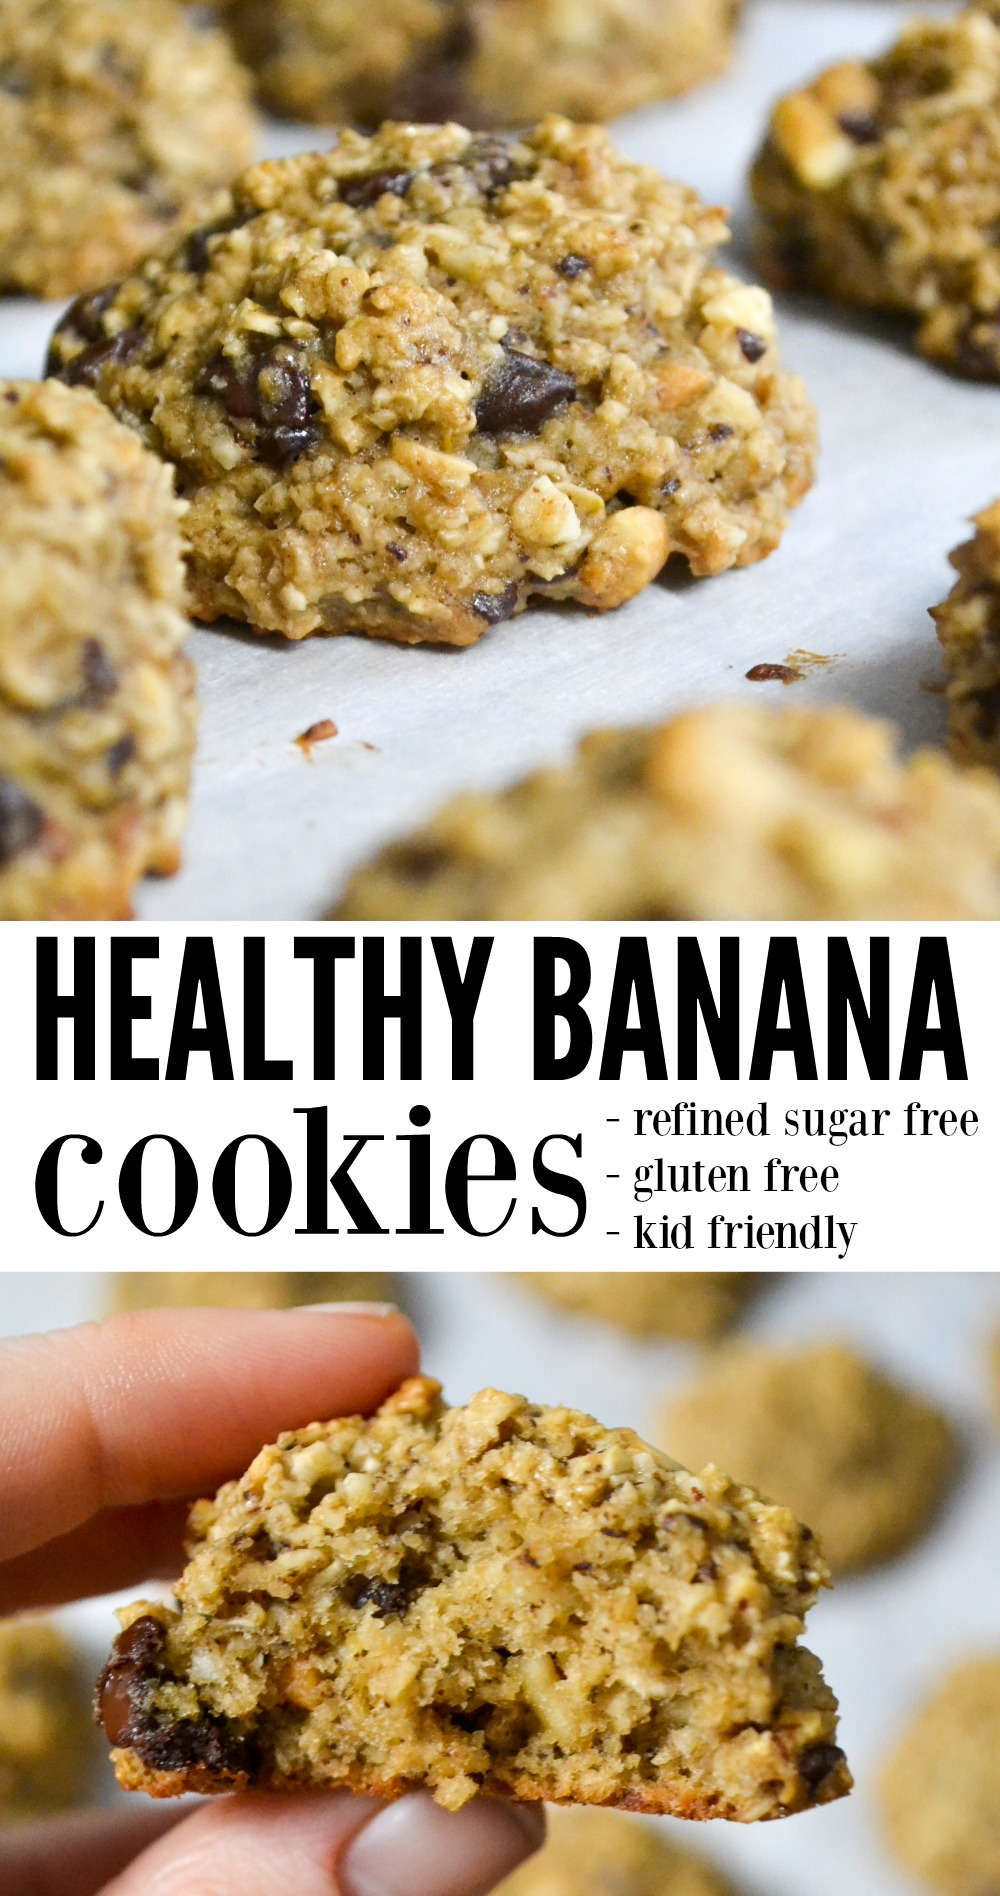 Healthy banana cookies are decadent enough to be an after dinner dessert, but nutritious enough to enjoy for breakfast. With no refined sugar, healthy cookies are something mom can serve without the guilt. #healthysnack #healthycookie #breakfastcookie